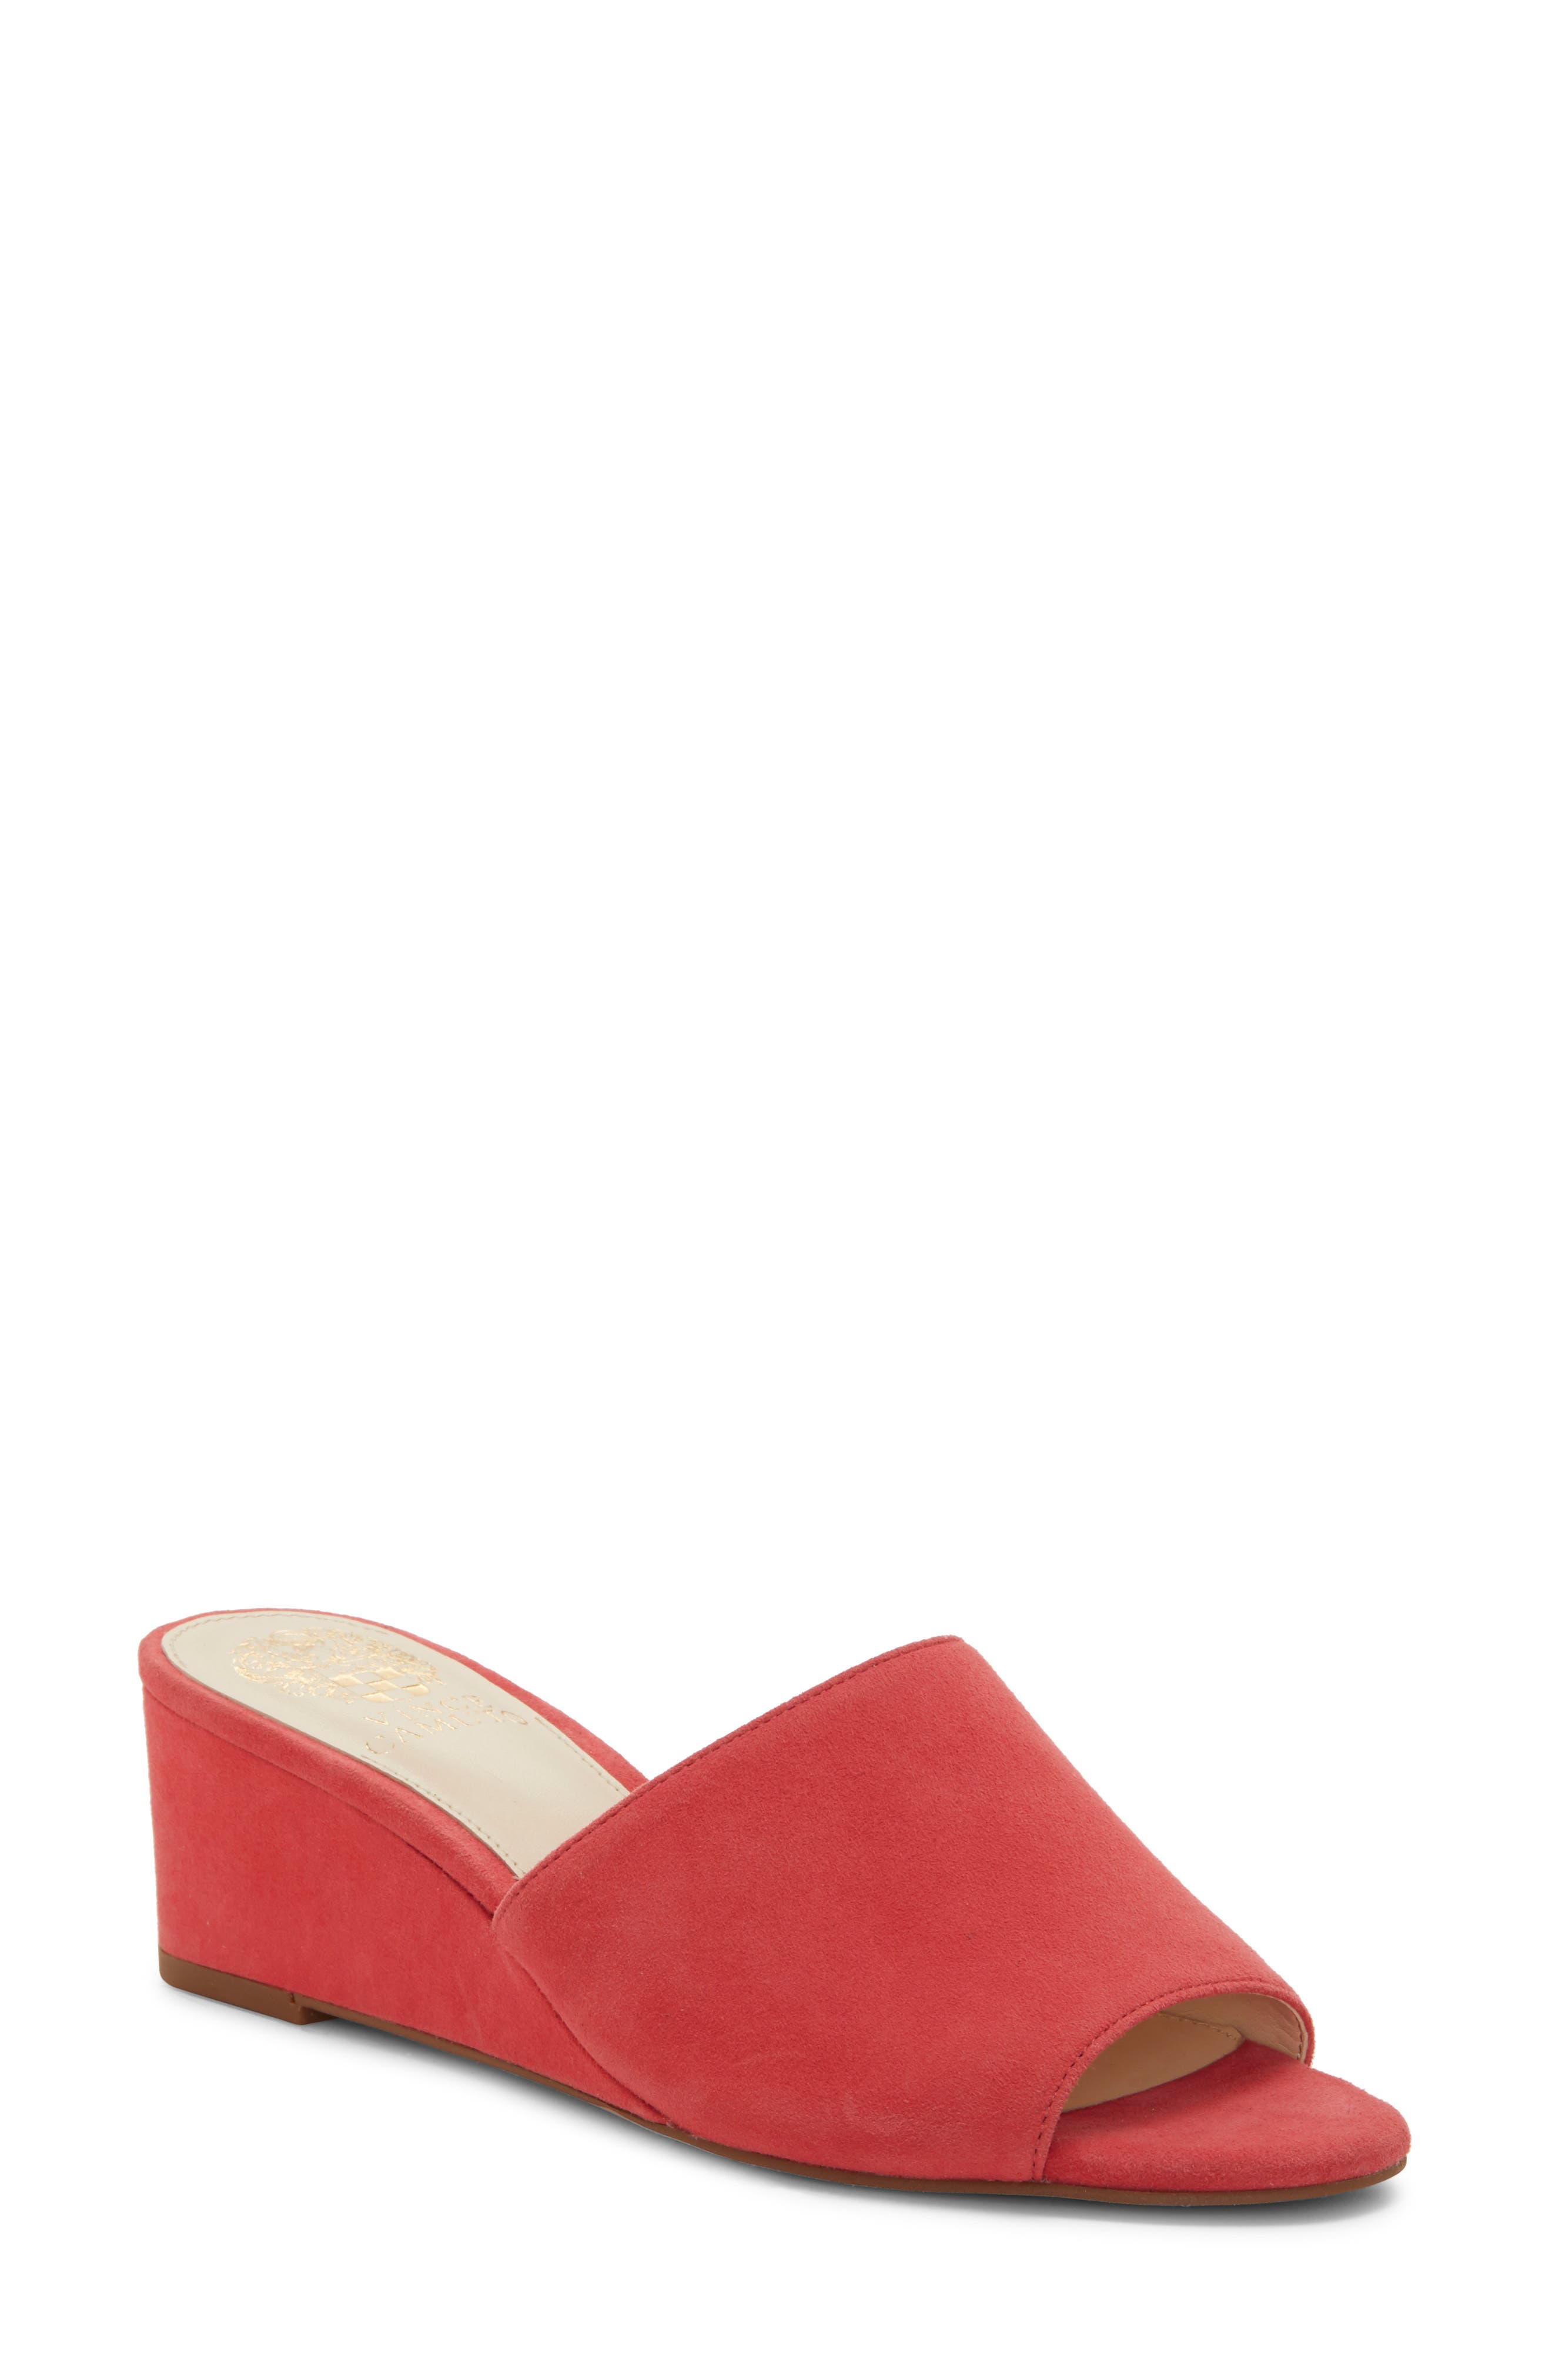 40a361041d5 Wedges Vince Camuto for Women